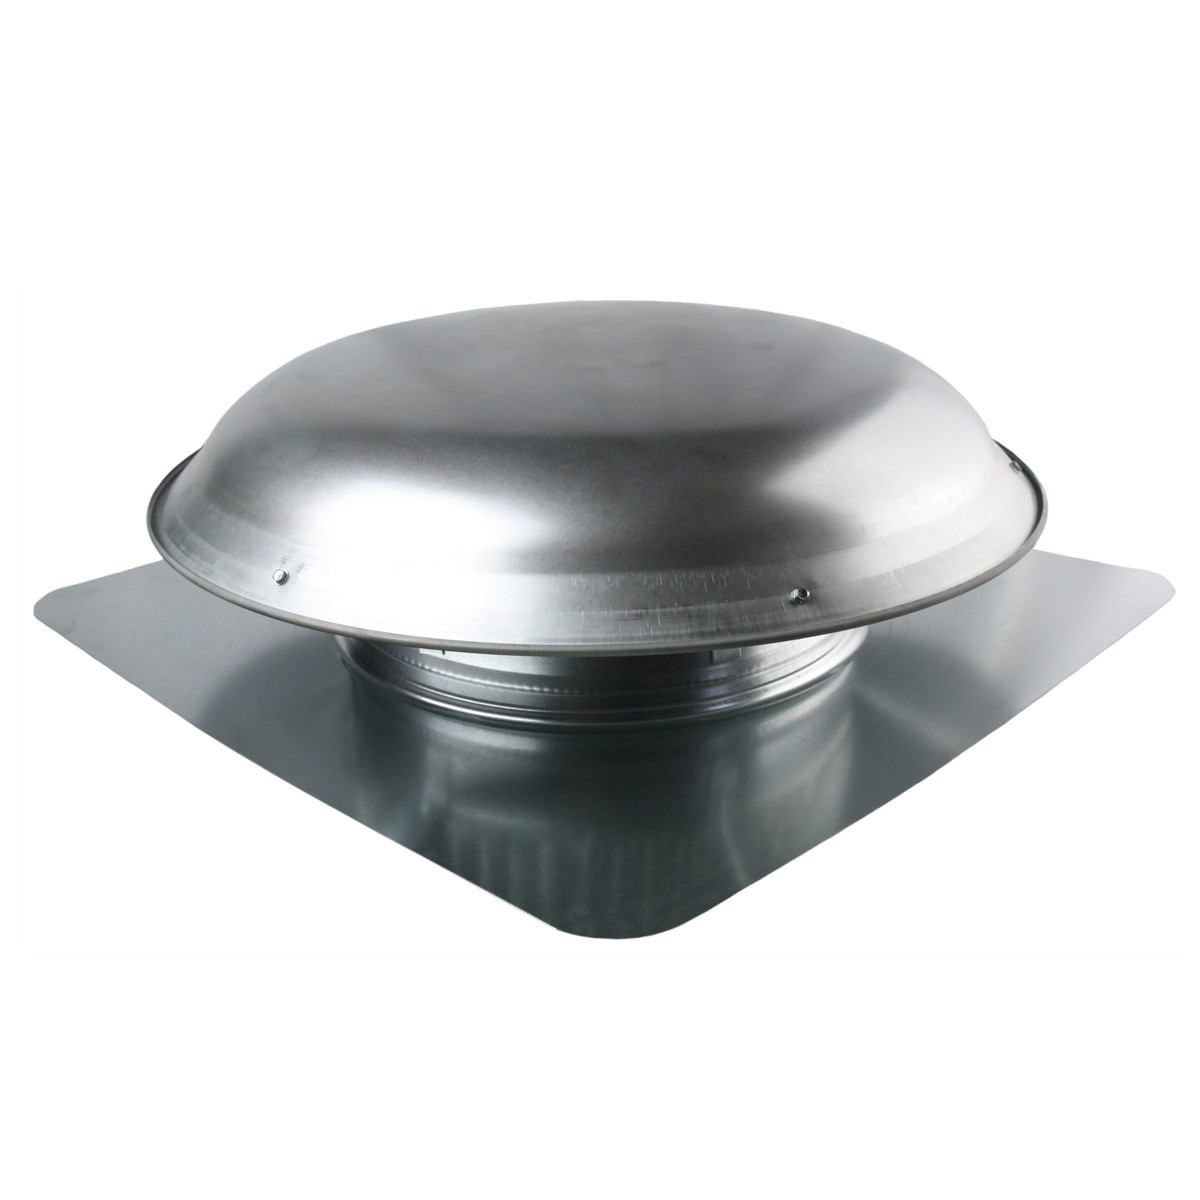 BUT VXNRGTAA 1400CFM Roof Fan - Aluminum Dome LIFETIME WARRANTY